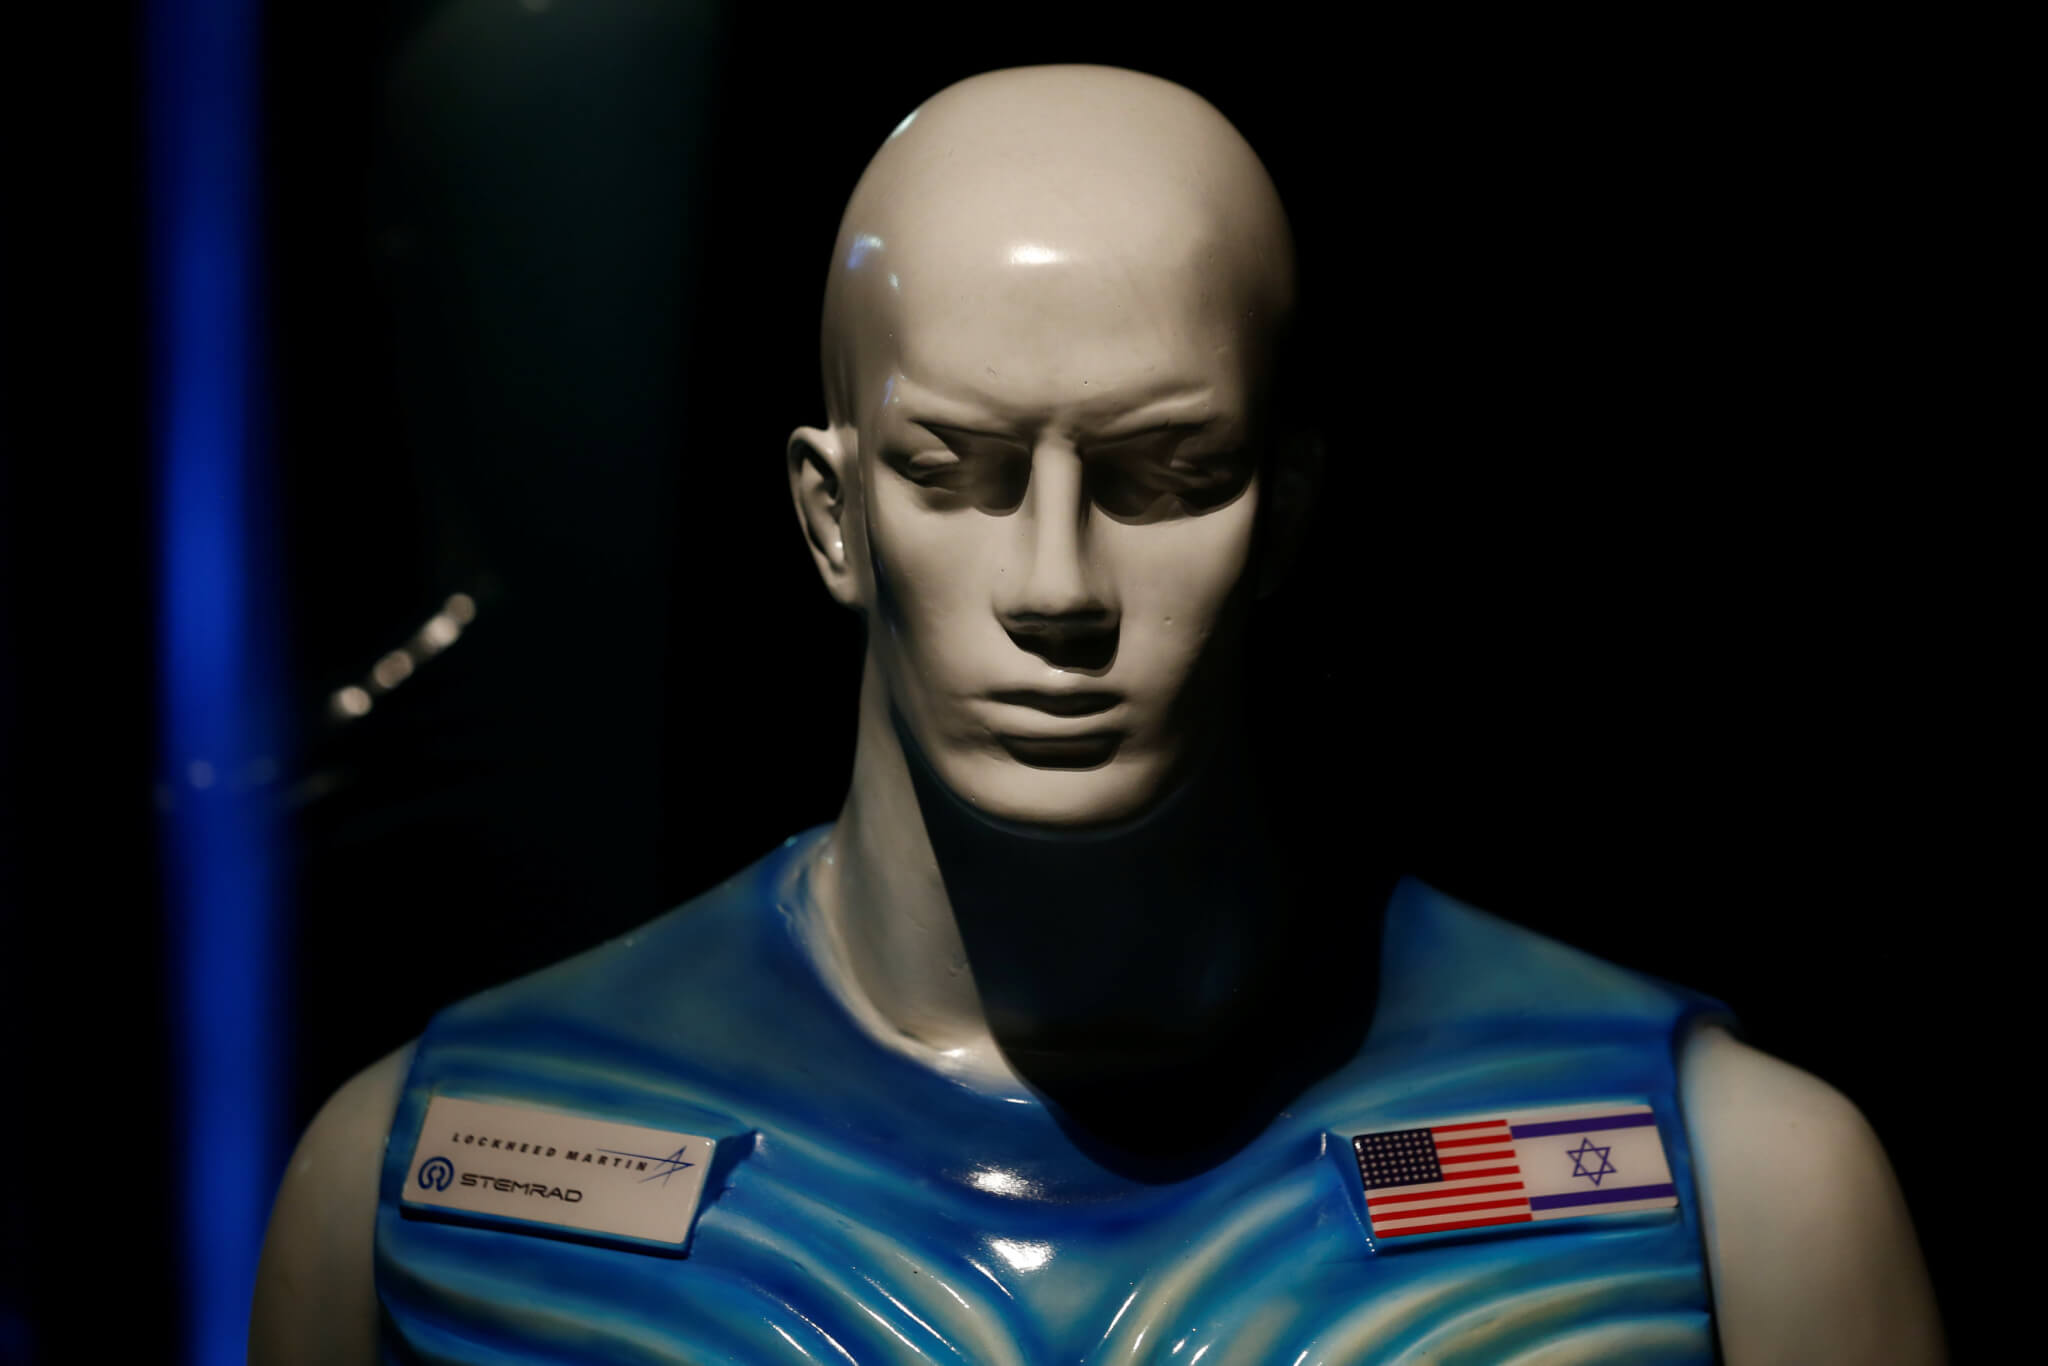 A sculpture of a man wearing Stemrad's new protective vest, Astrorad, is seen at an exhibit at Madatech, National Museum of Science Technology and Space in Haifa, Israel February 23, 2017. REUTERS/Amir Cohen